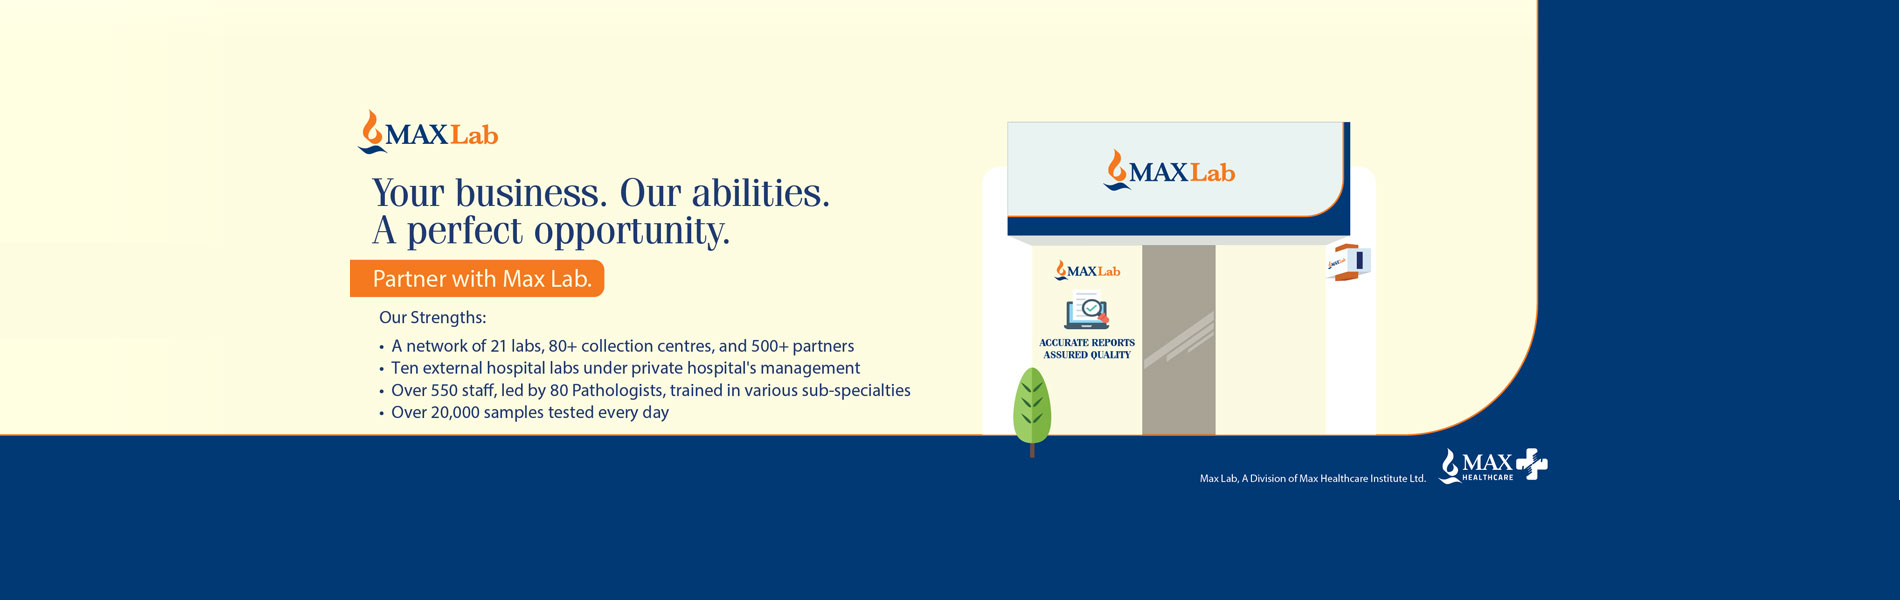 Max Lab, A Division of Max Healthcare Institute Limited